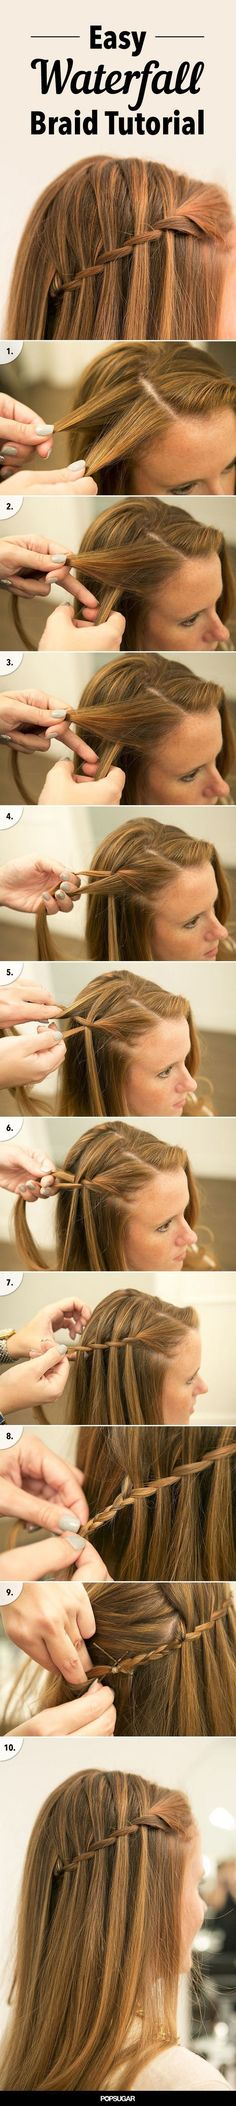 16 Easy Ways To Style Your Hair… #2 Is PERFECT For Summer. - http://www.lifebuzz.com/diy-hair/: